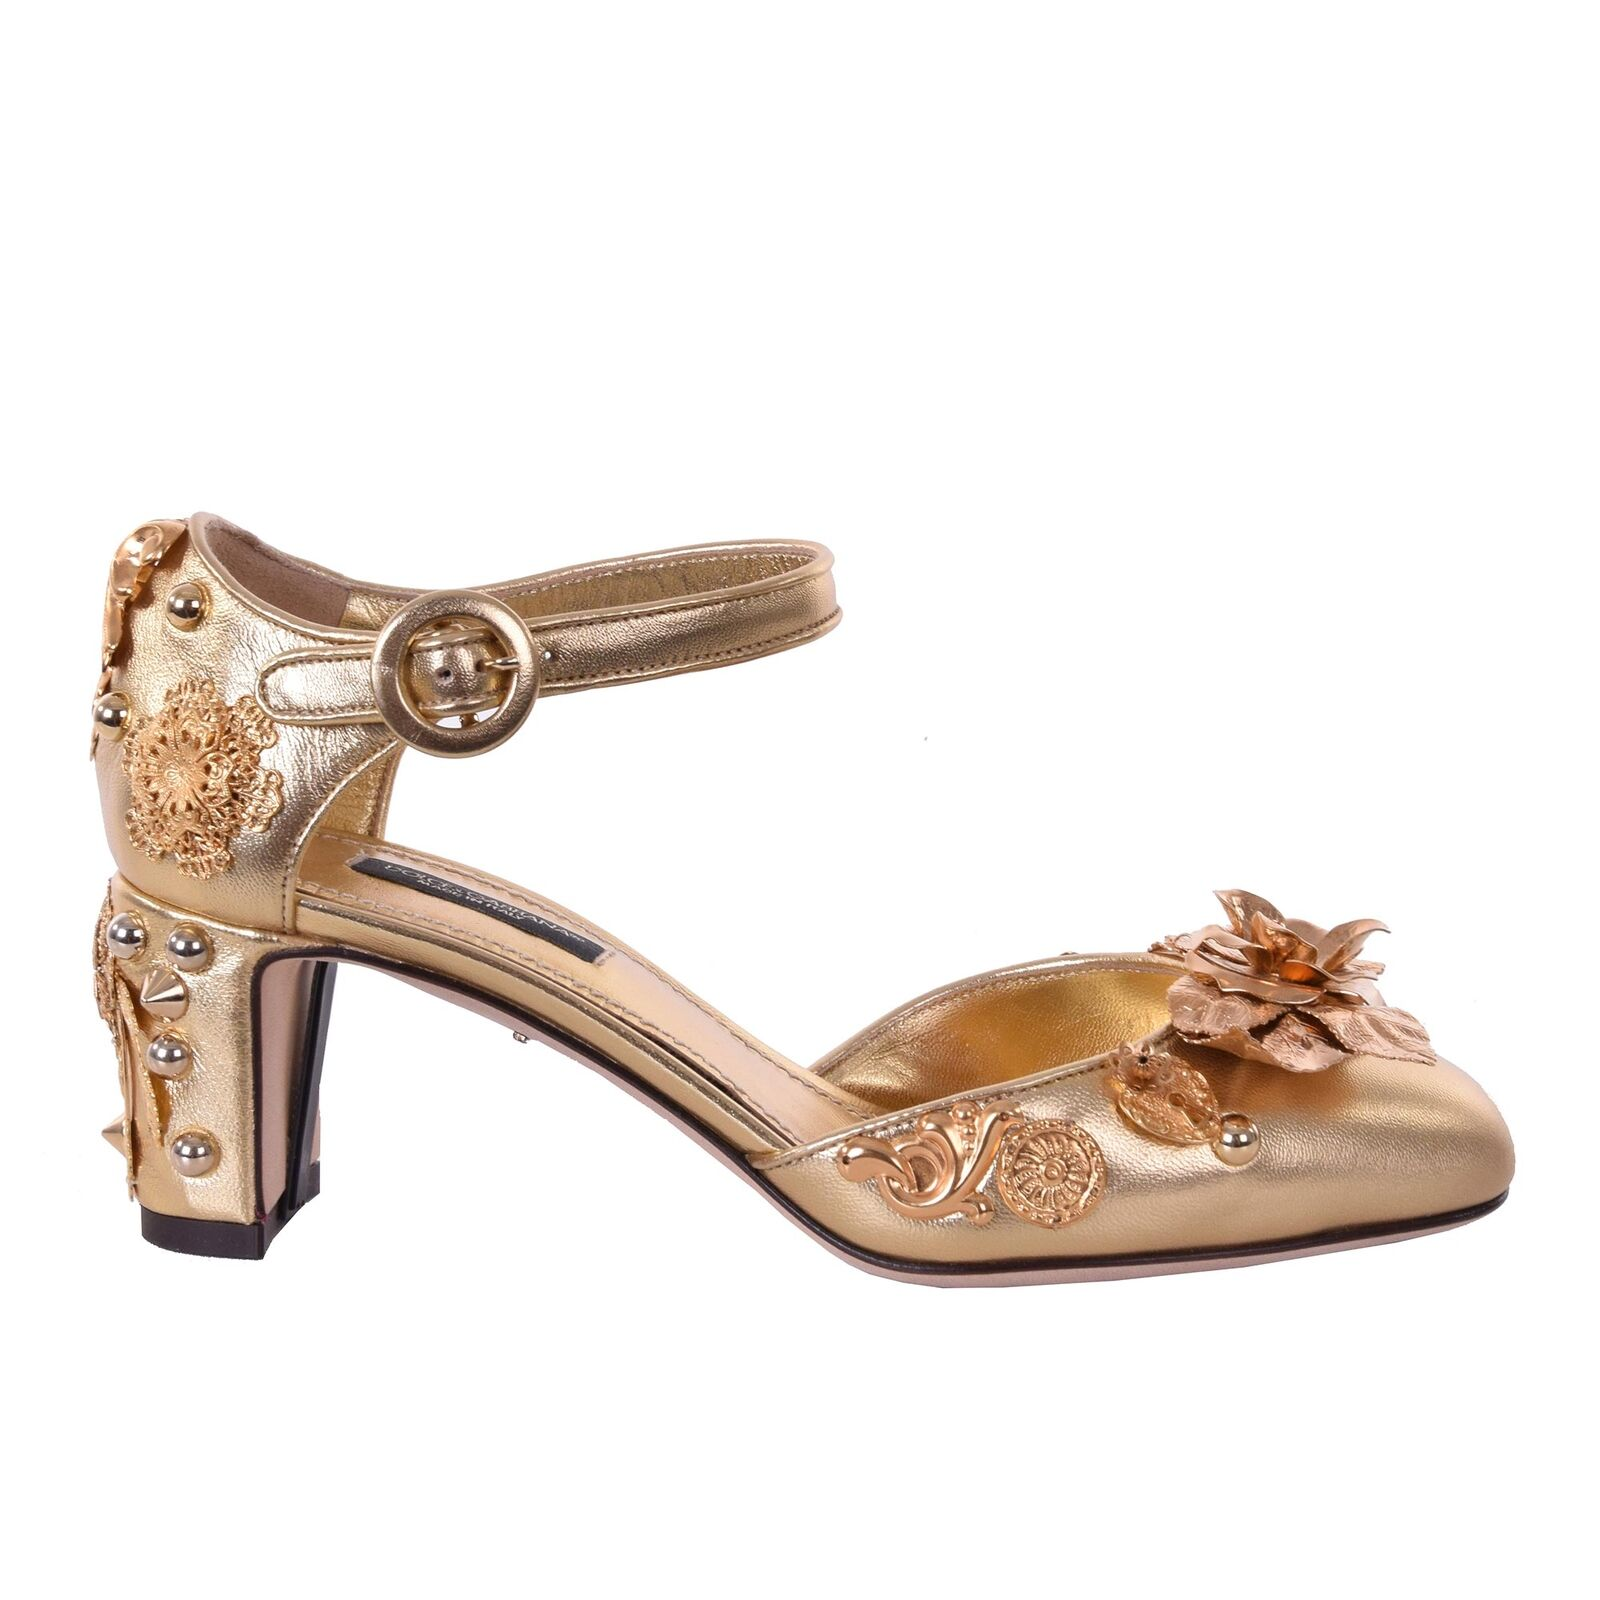 DOLCE /& GABBANA Jewelled Floral Nappa Leather Baroque Pumps Heels Gold 06727